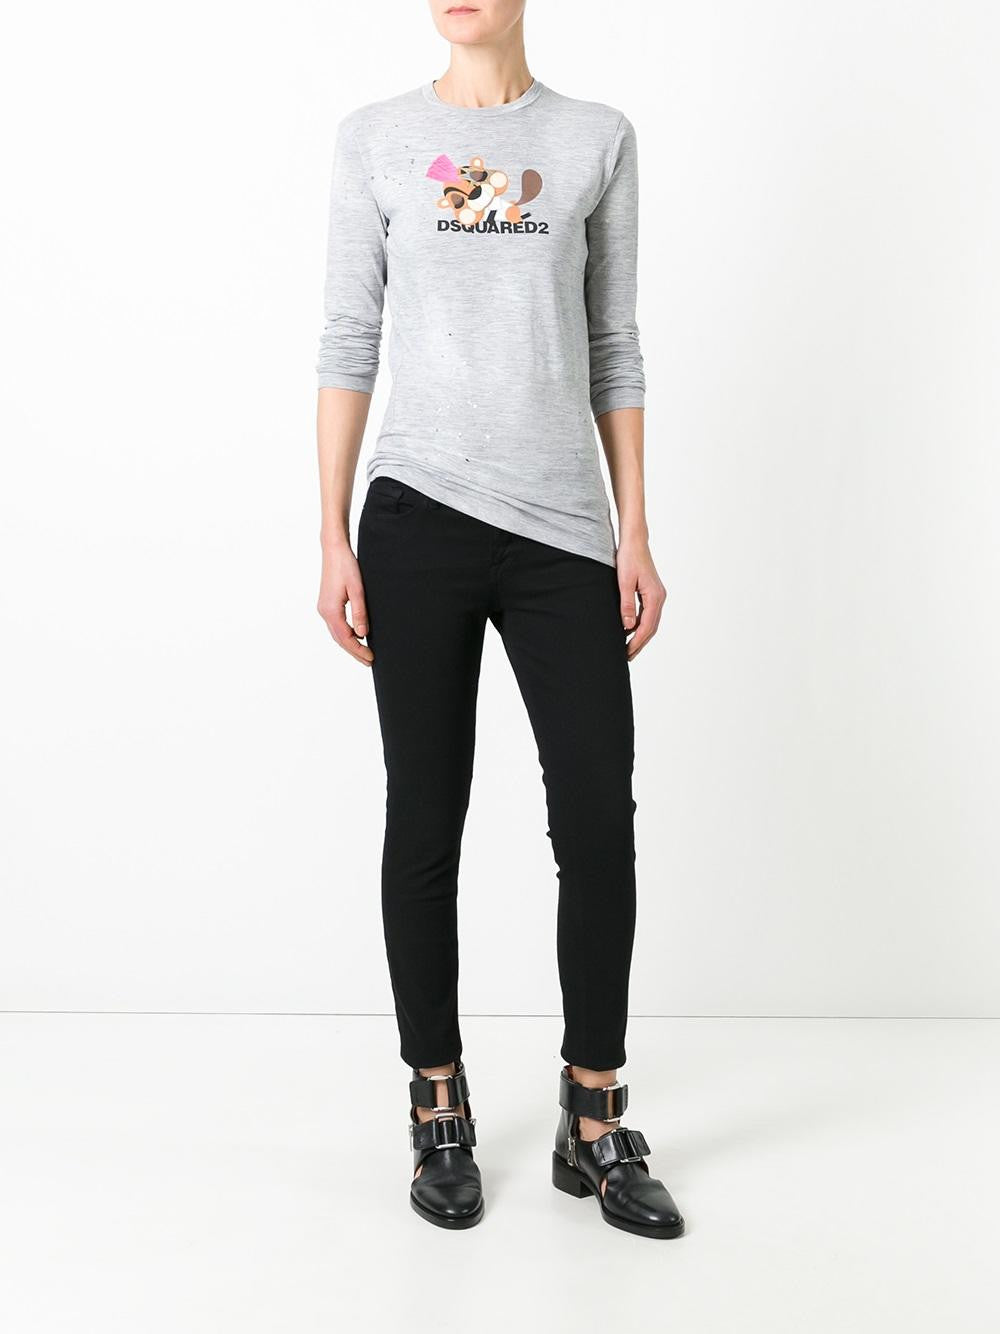 Graphic Long-Sleeve Tee | S75GC0848 S22146